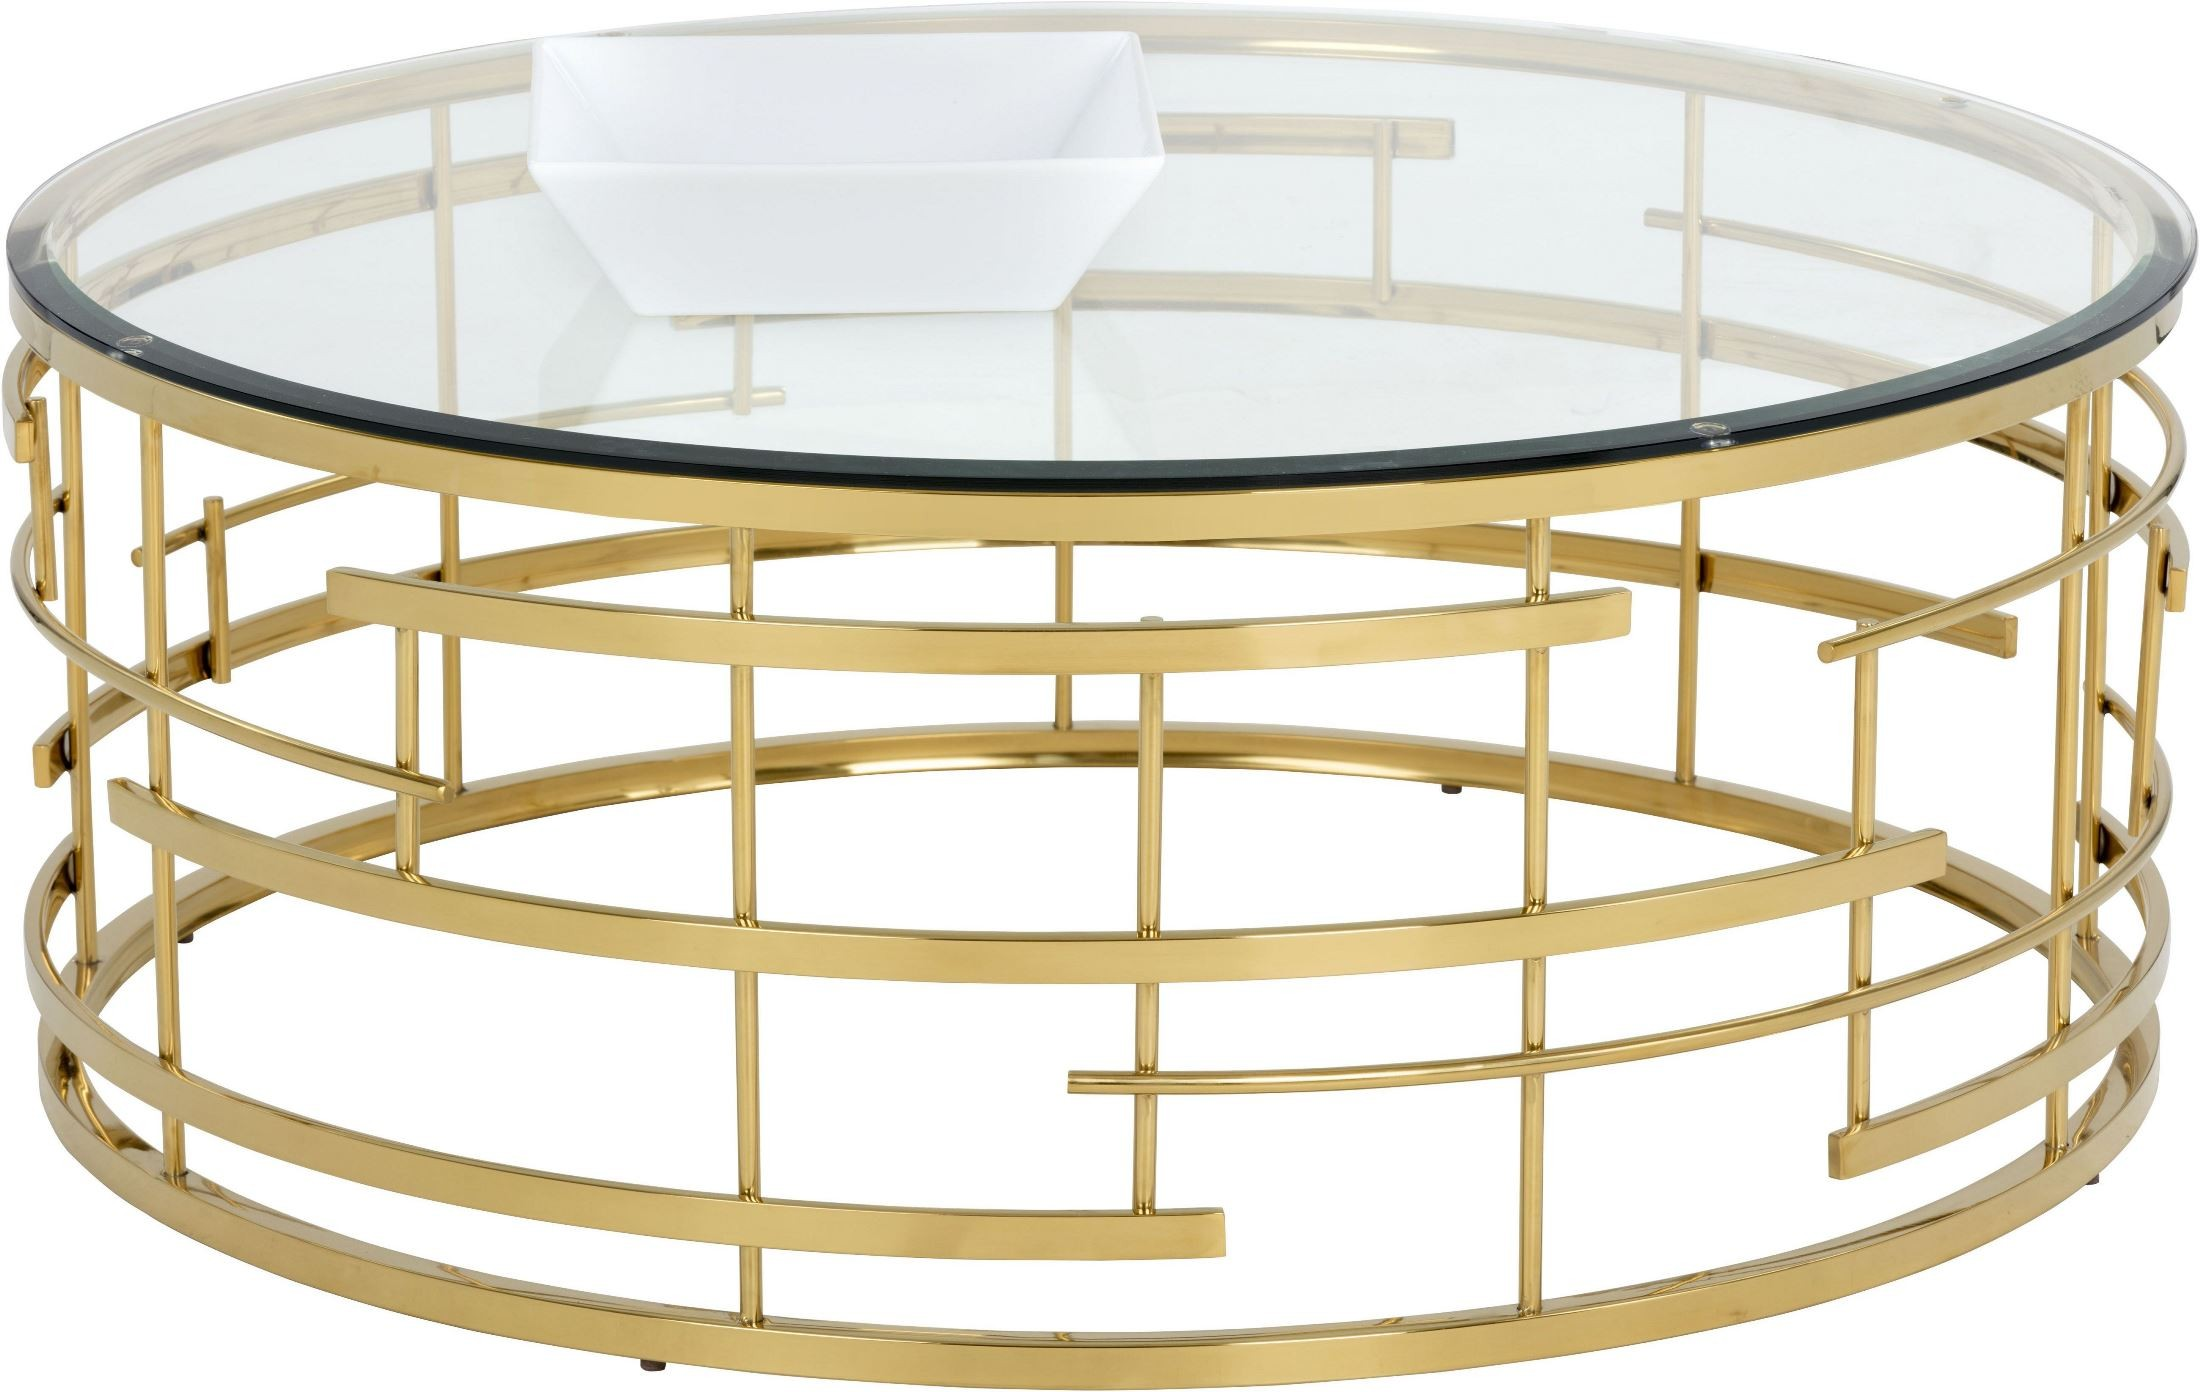 Cielo gold metal coffee table 101485 sunpan modern home Gold metal coffee table